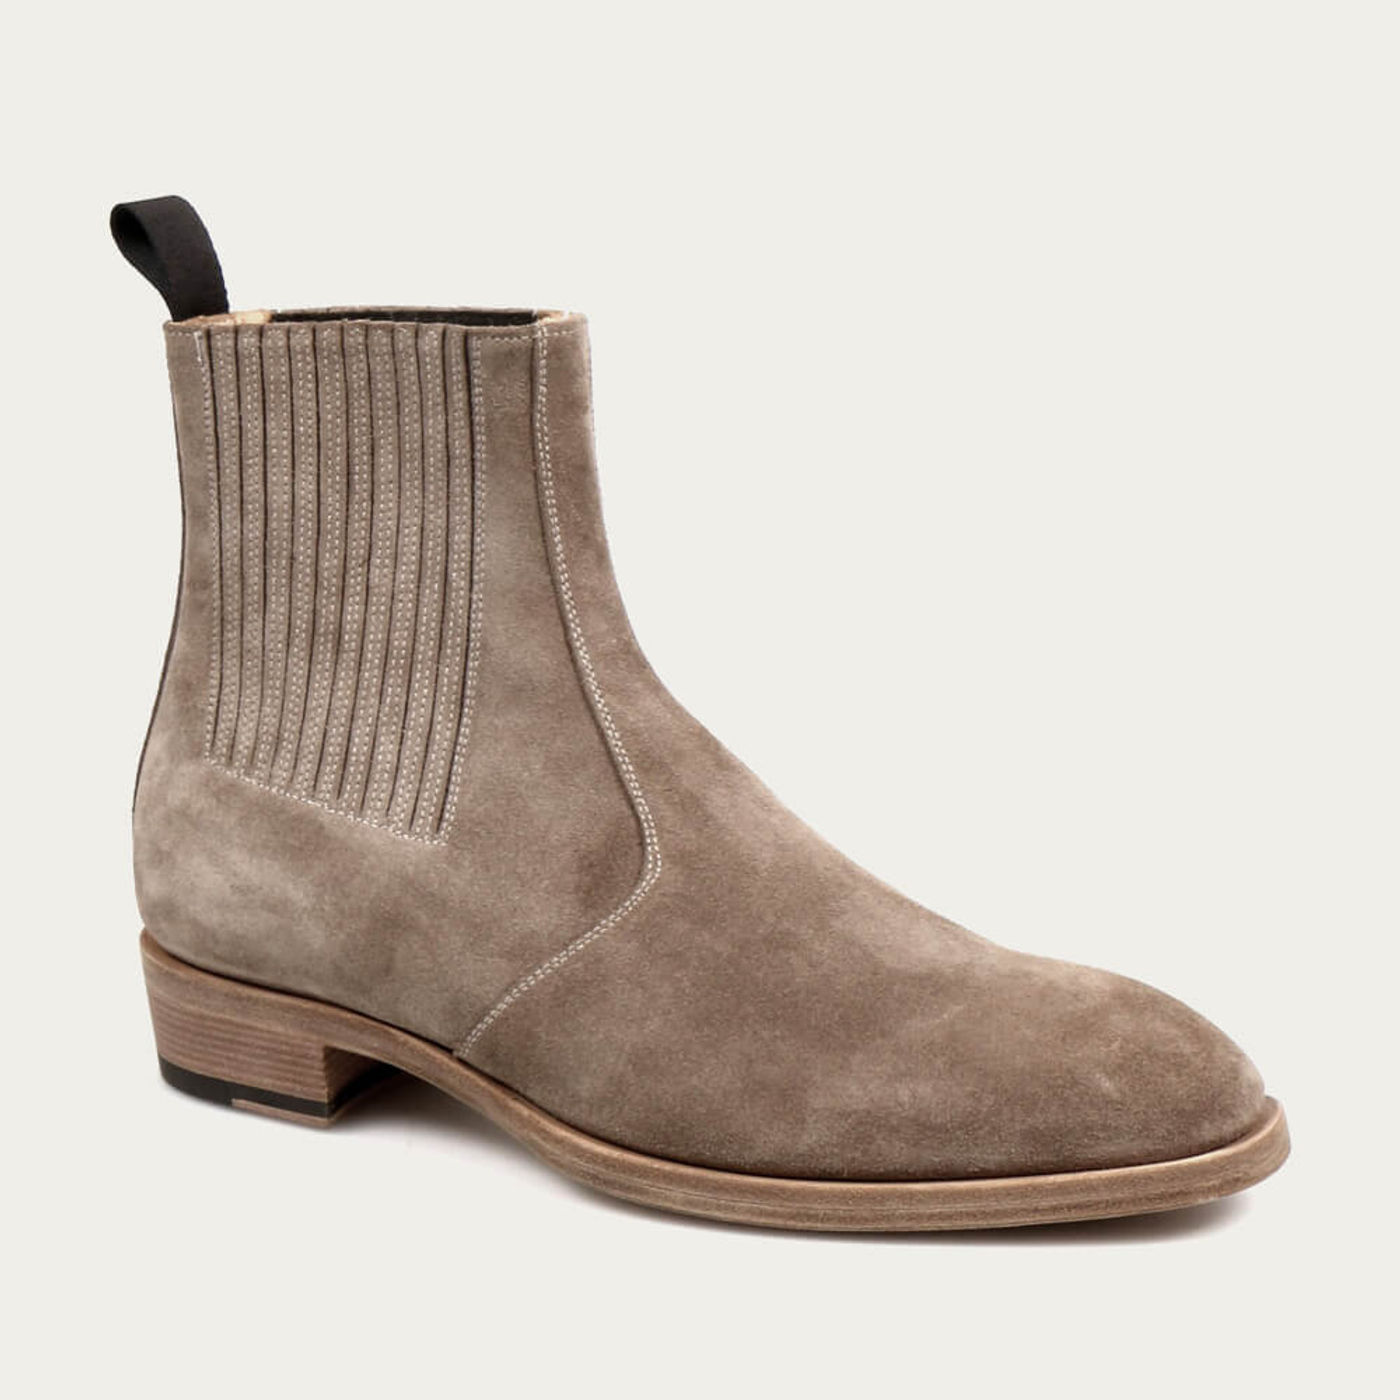 Sand Jay Suede Chelsea Leather Boots   Bombinate